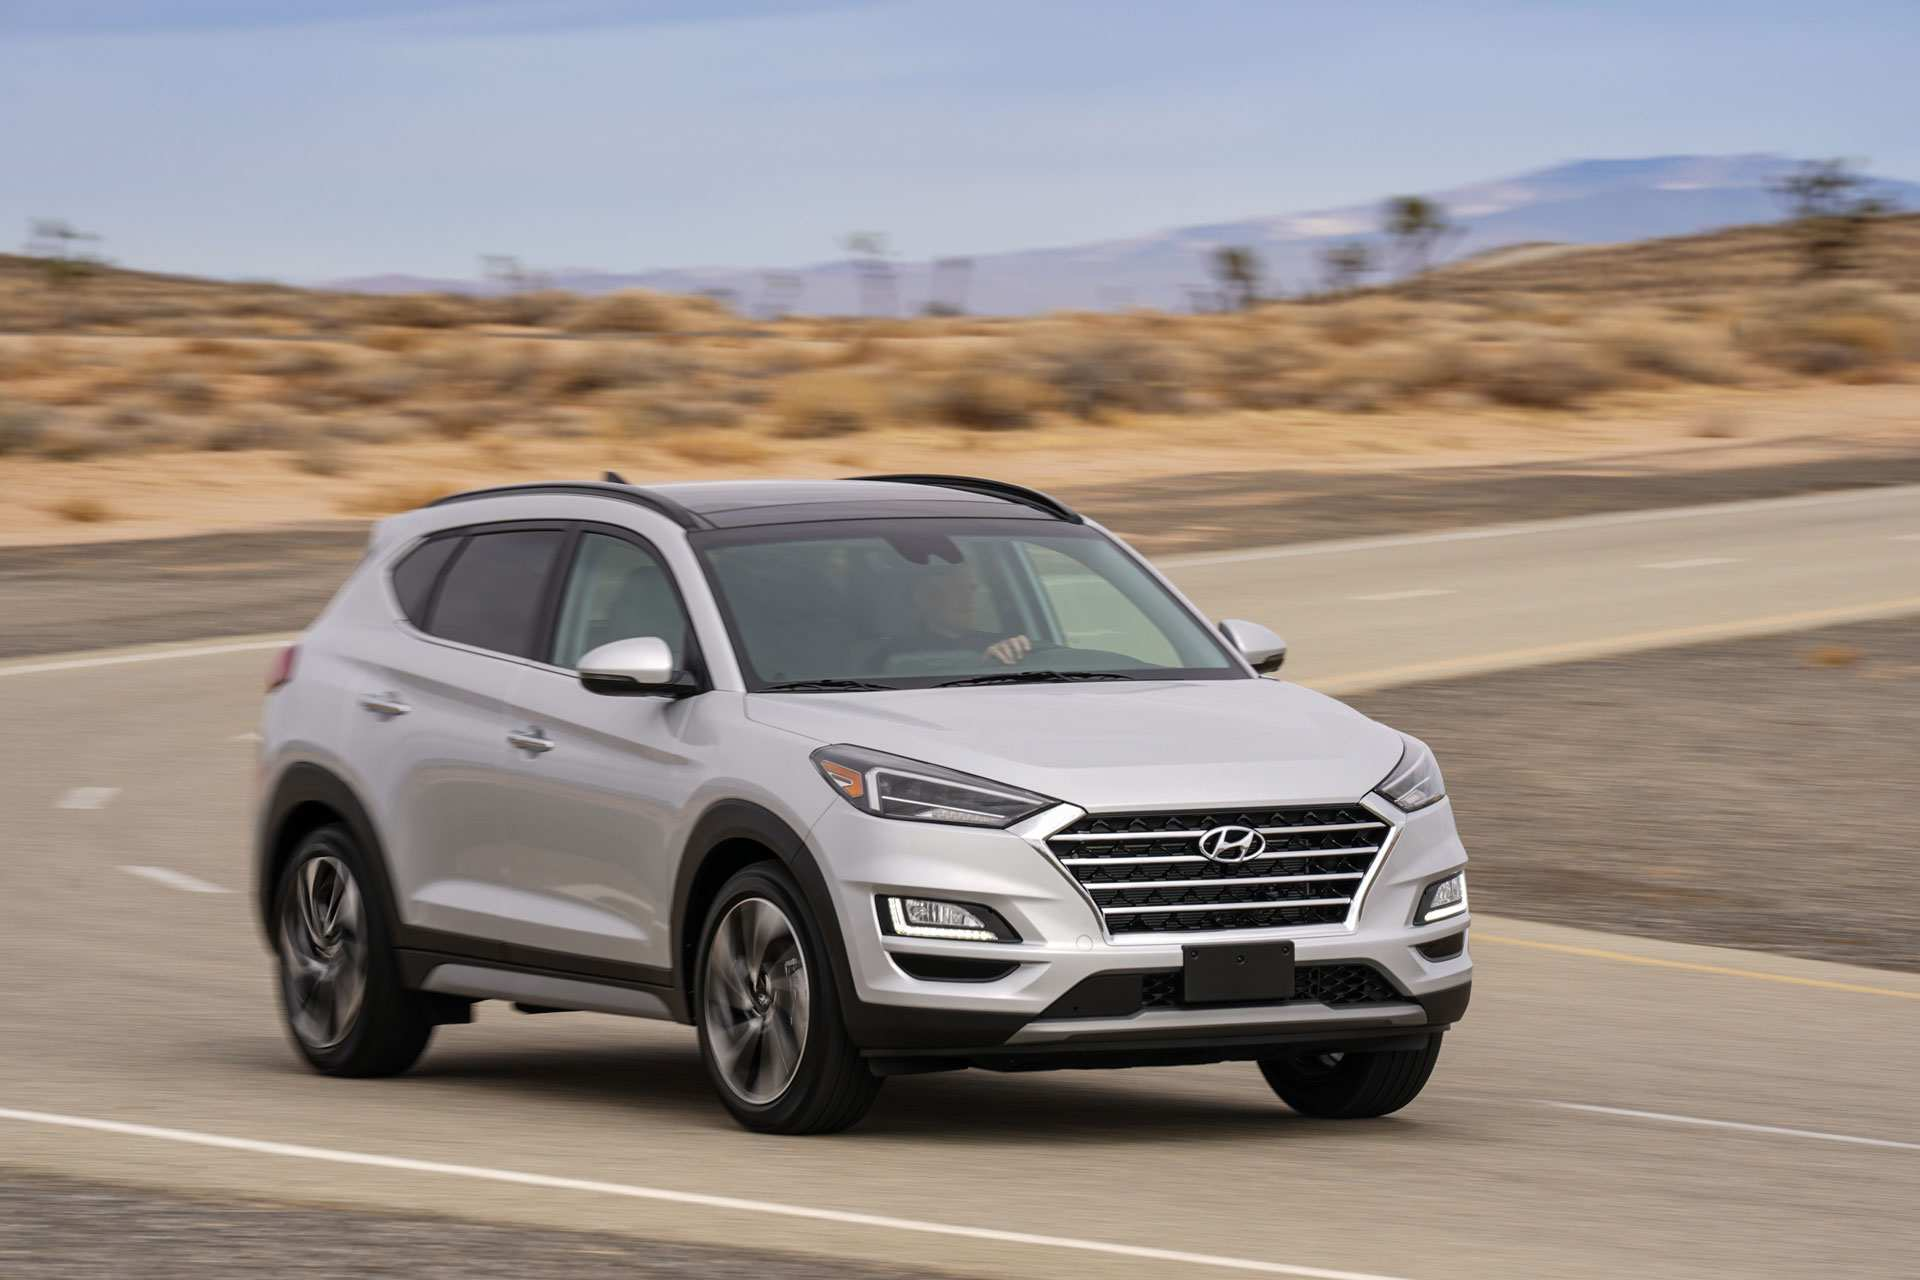 75 Gallery of 2019 Hyundai Full Size Suv Pricing for 2019 Hyundai Full Size Suv